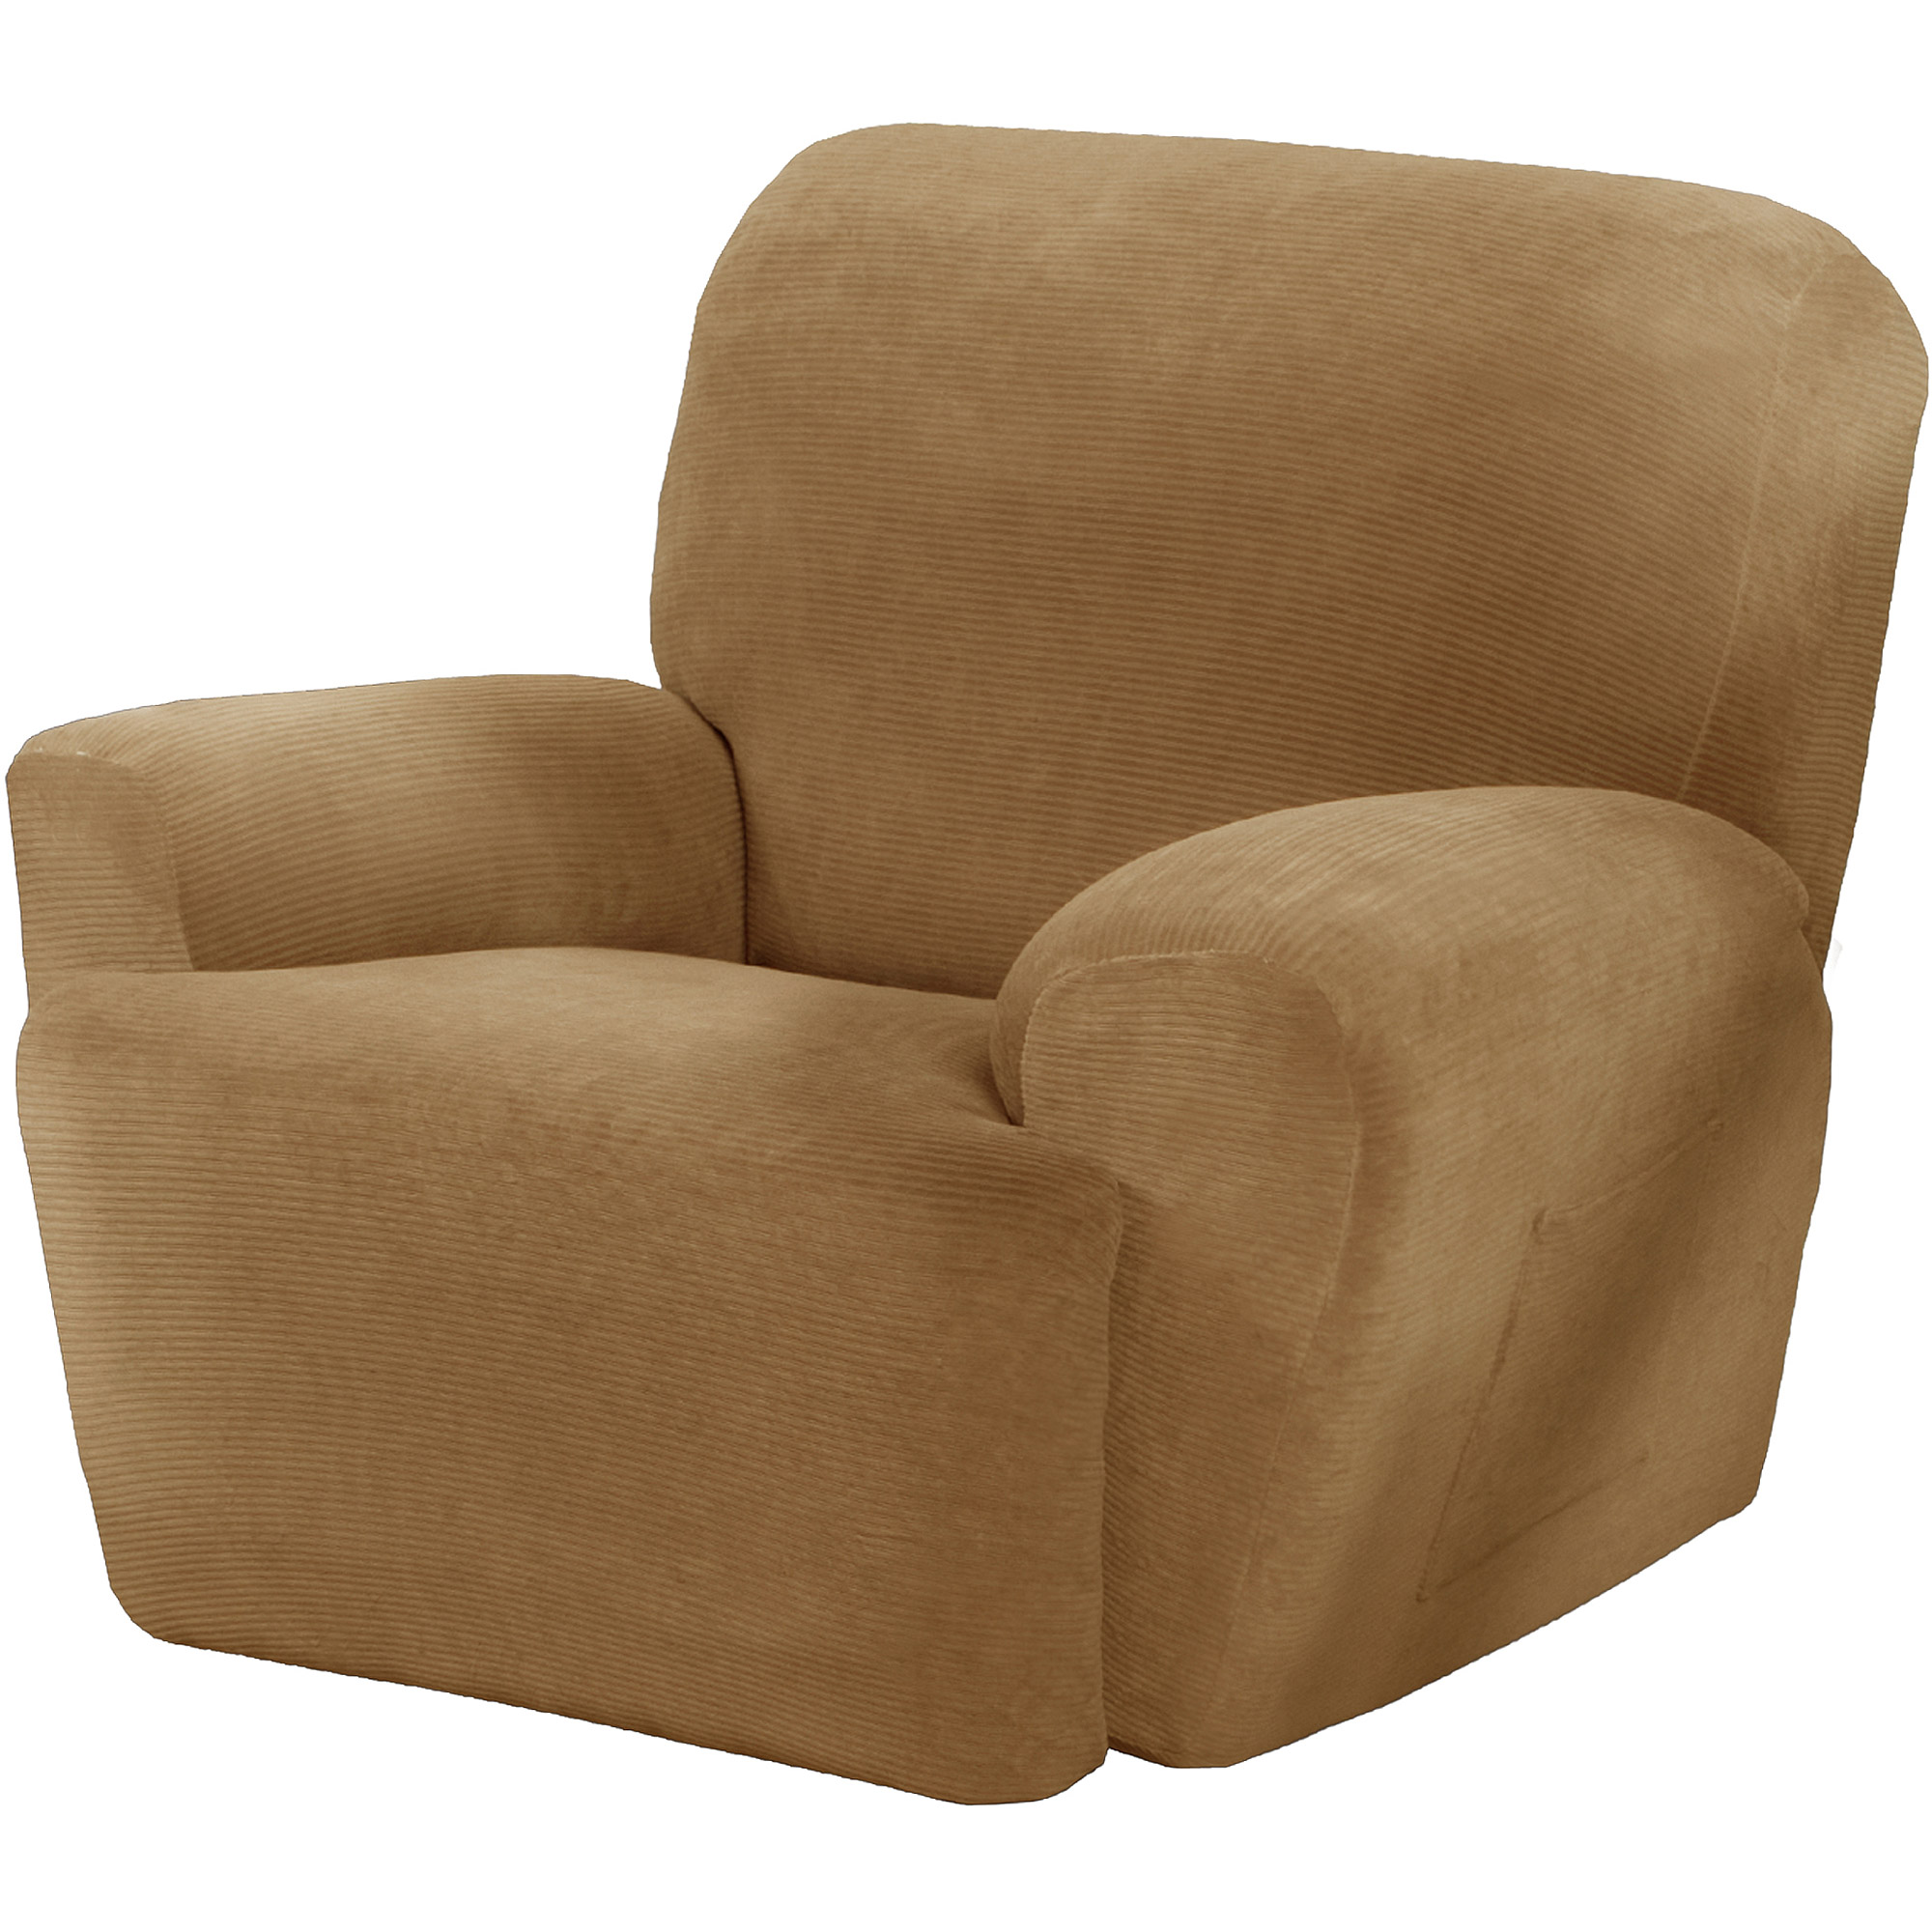 Maytex Collin Polyester/Spandex Recliner Slipcover  sc 1 st  Walmart : faux leather recliner covers - islam-shia.org